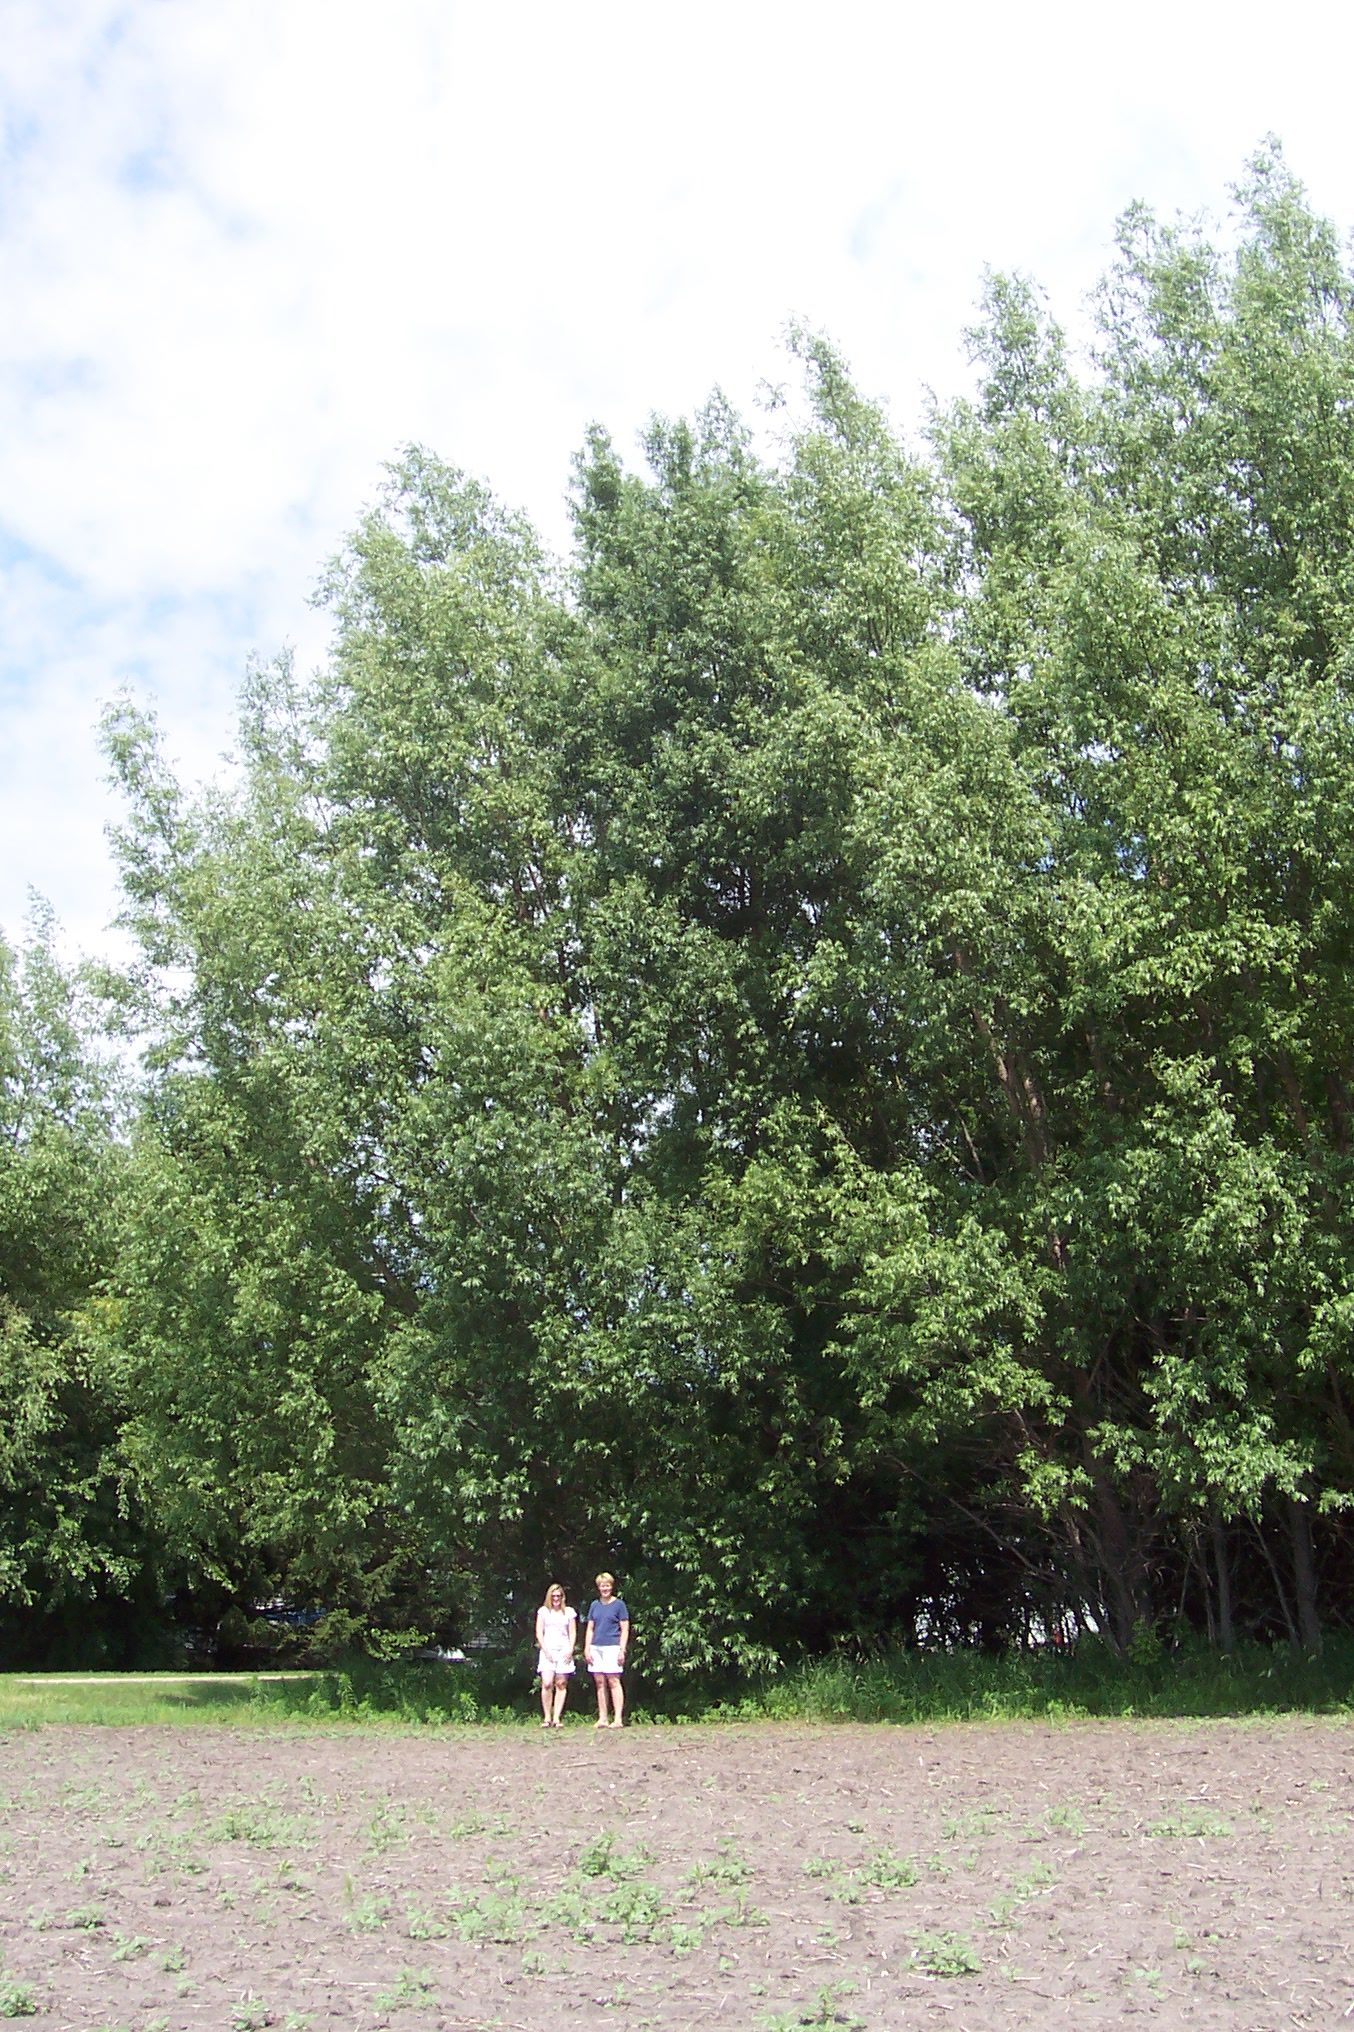 Hybrid Willow trees, fastest growing species in North America ...